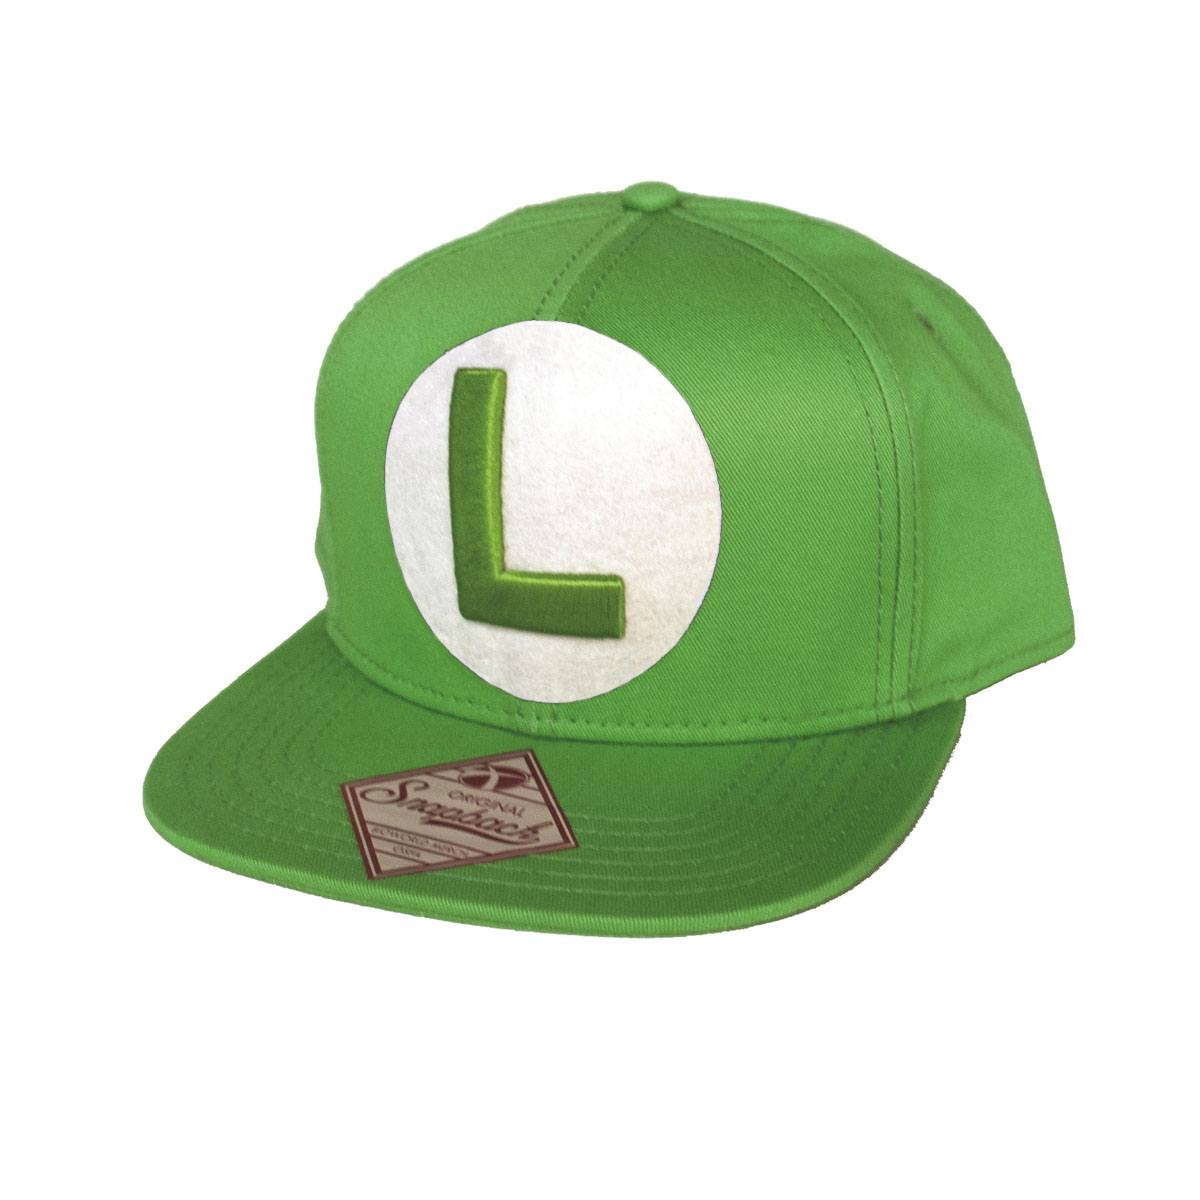 Nintendo Snapback Cap with L in Front (Groen)